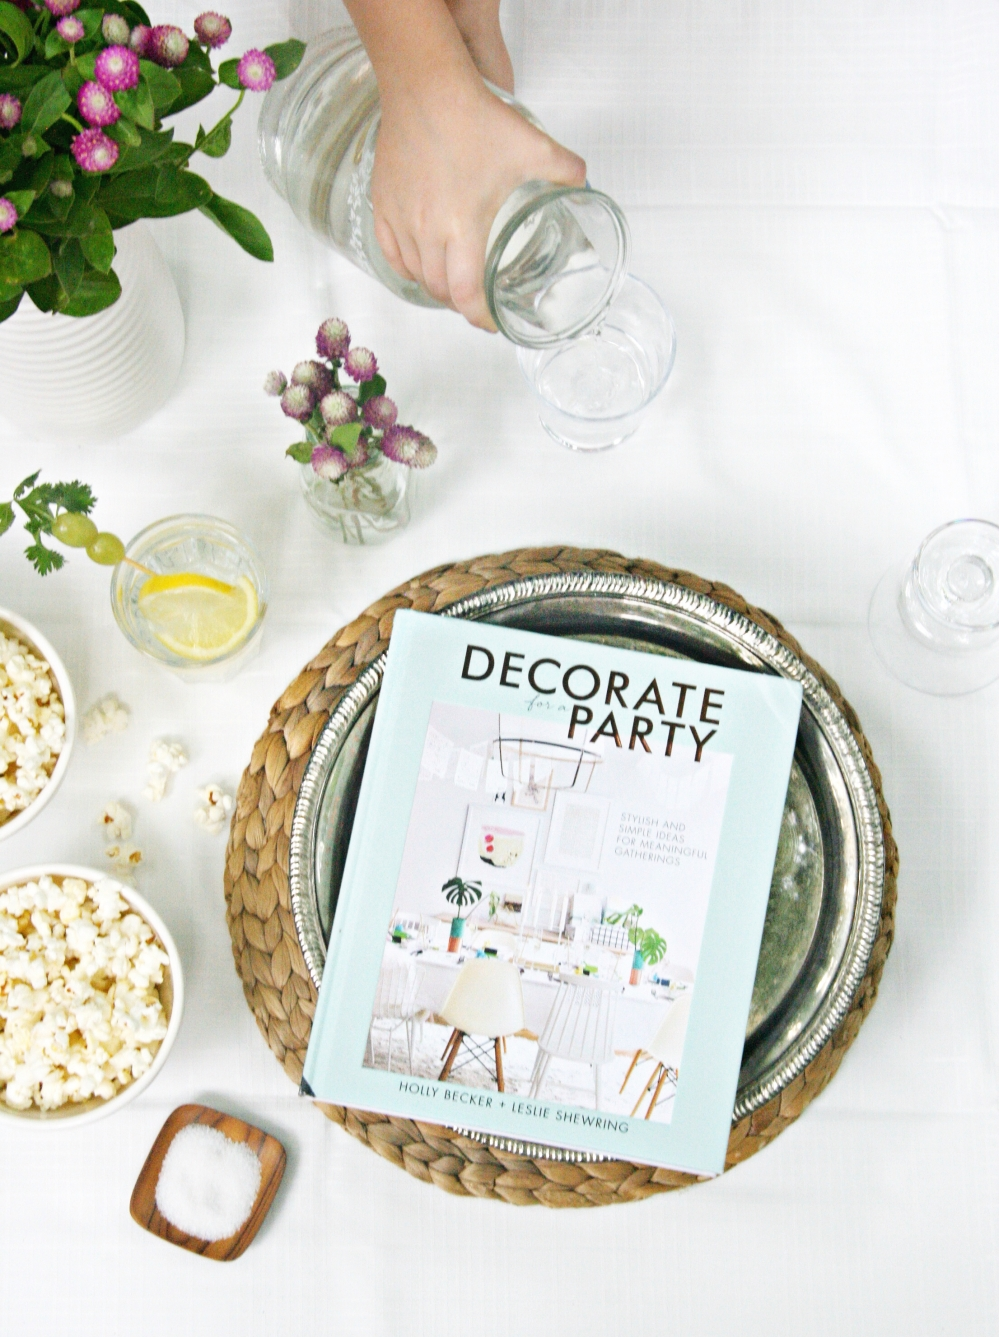 Decorate for a Party by Holly Becker and Leslie Shewring cover vertical